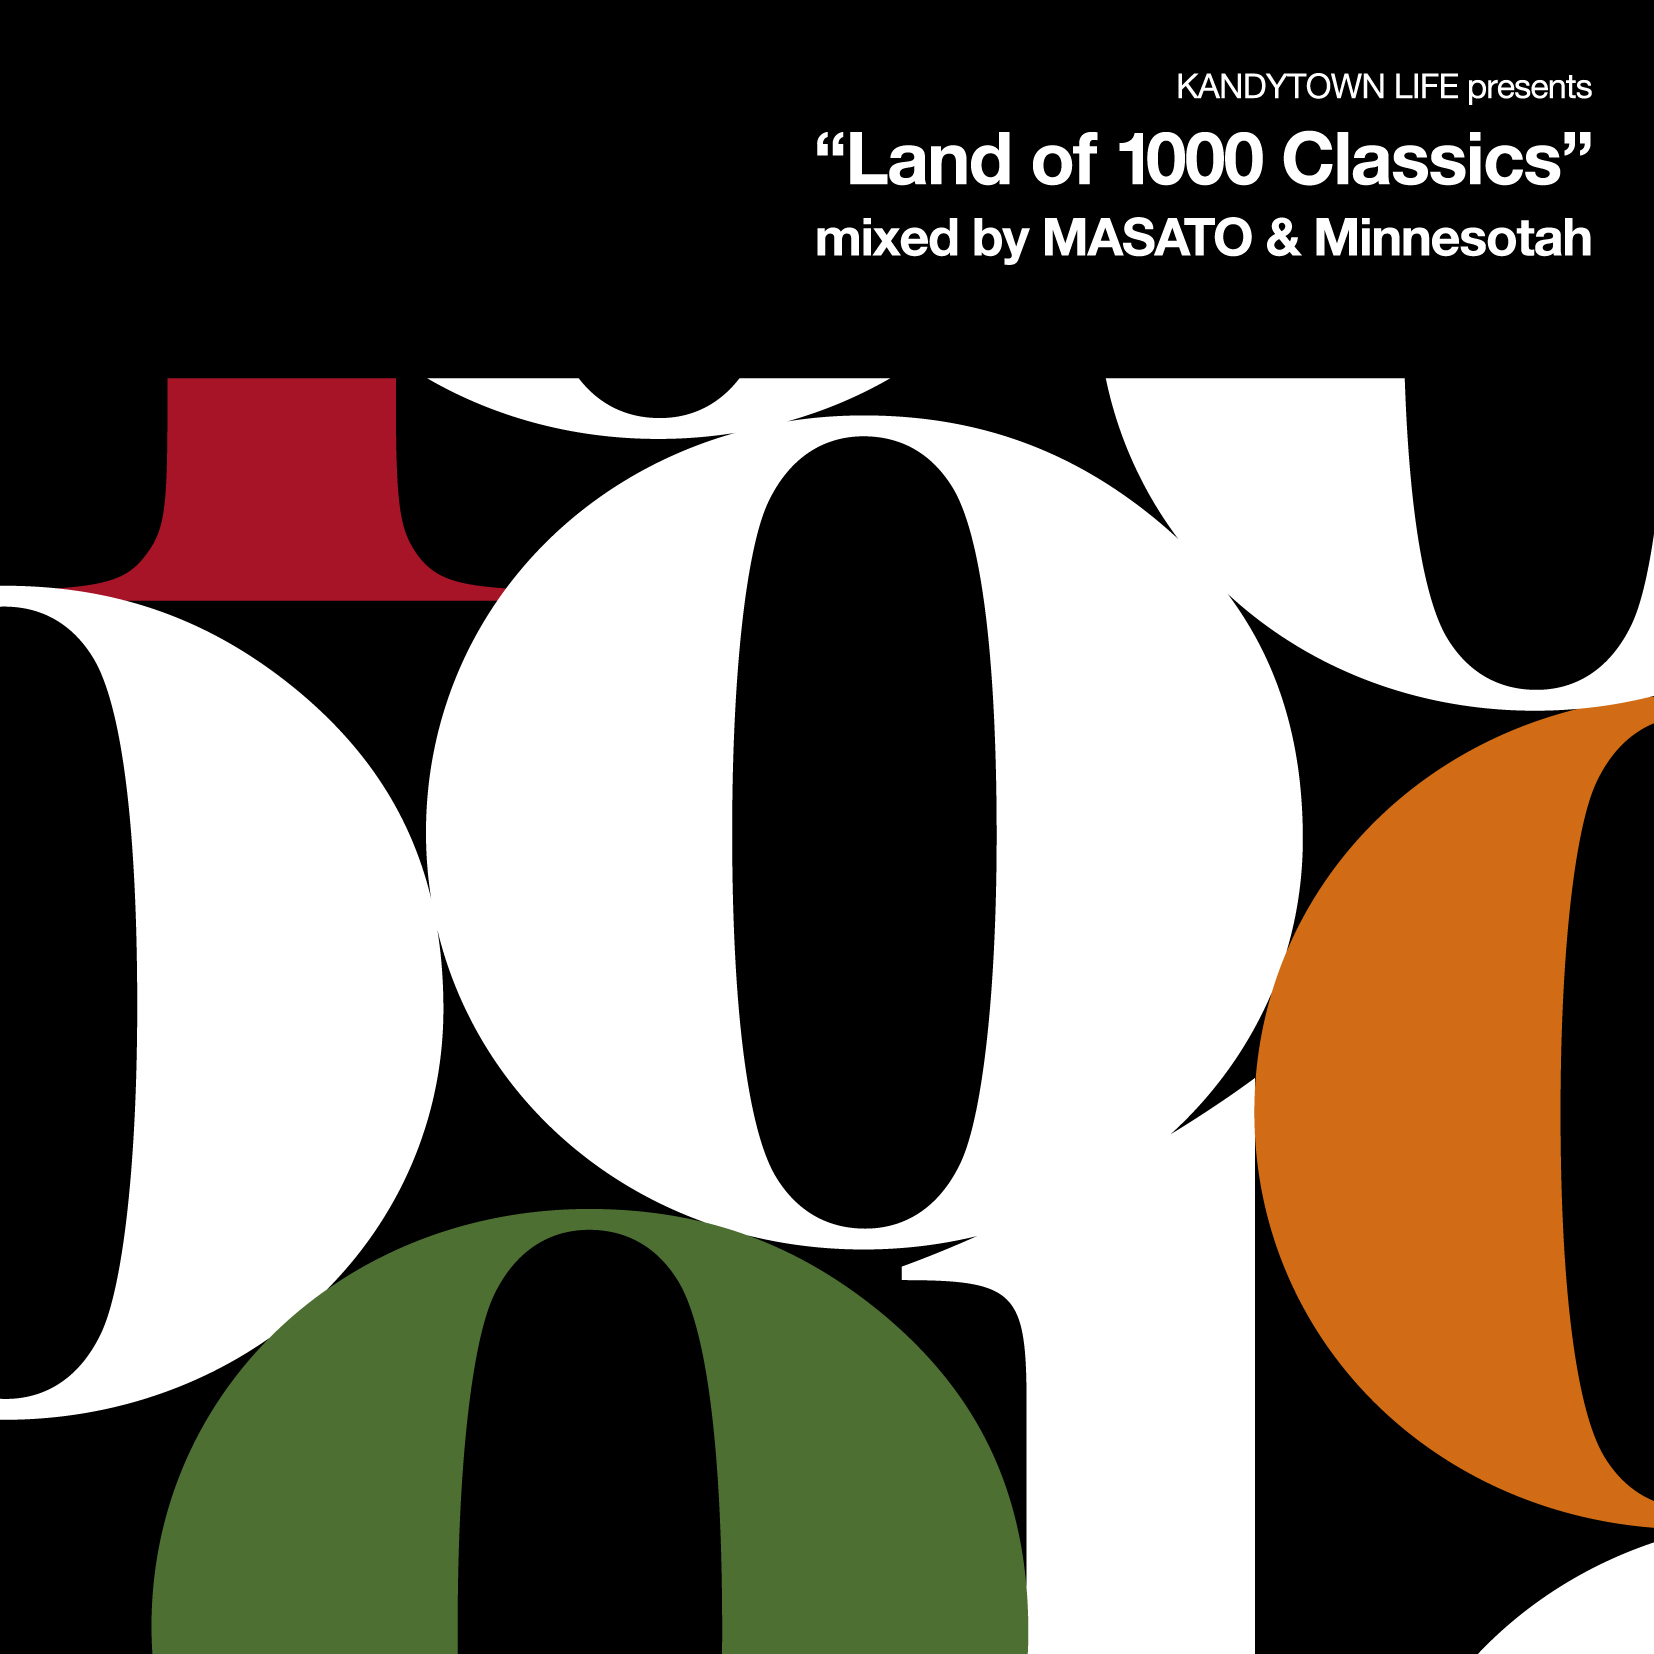 """KANDYTOWN LIFE presents<br>""""Land of 1000 Classics""""<br>mixed by MASATO & Minnesotah"""